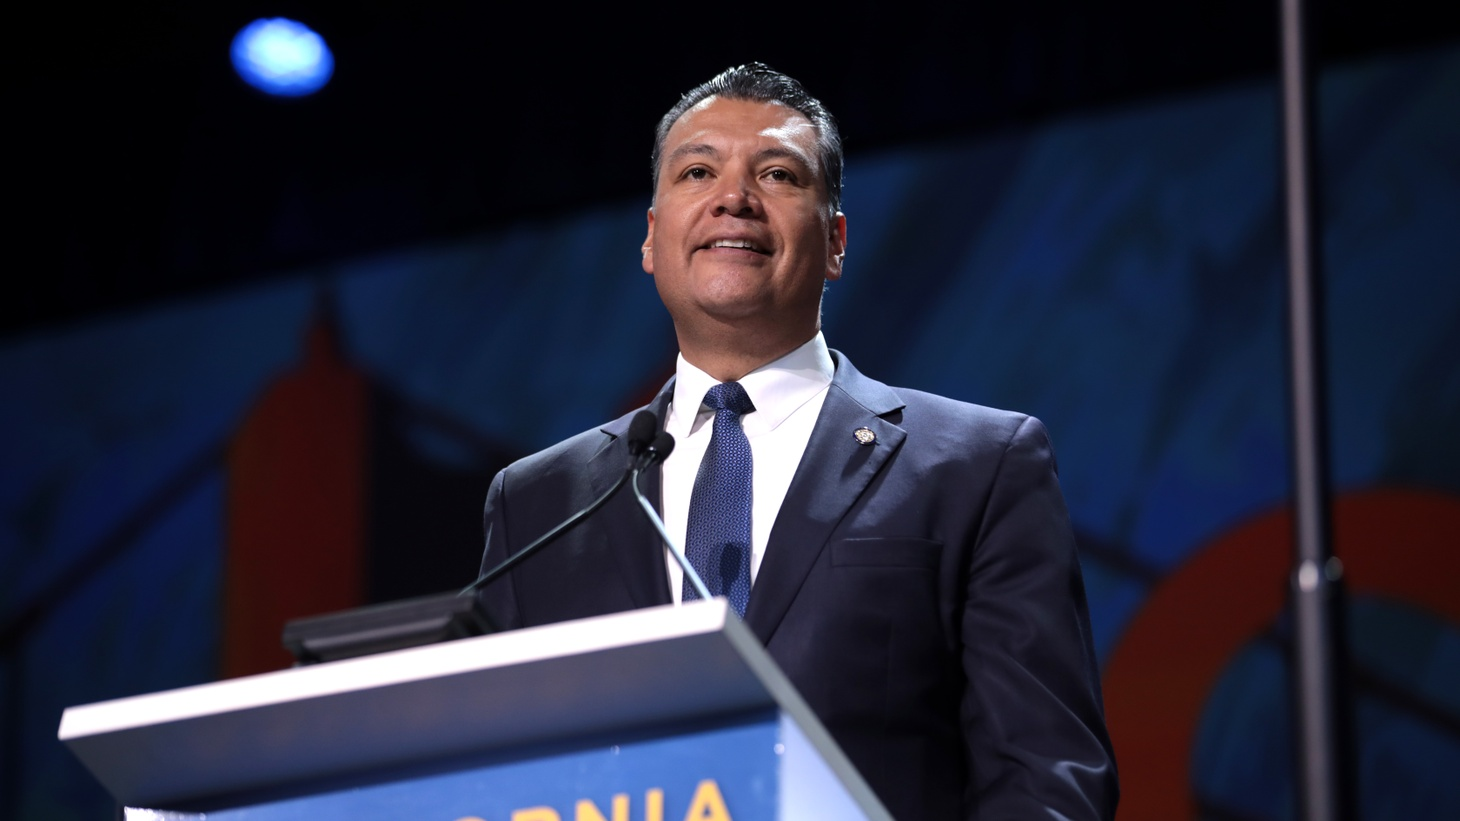 Alex Padilla speaking with attendees at the 2019 California Democratic Party State Convention at the George R. Moscone Convention Center in San Francisco, California.